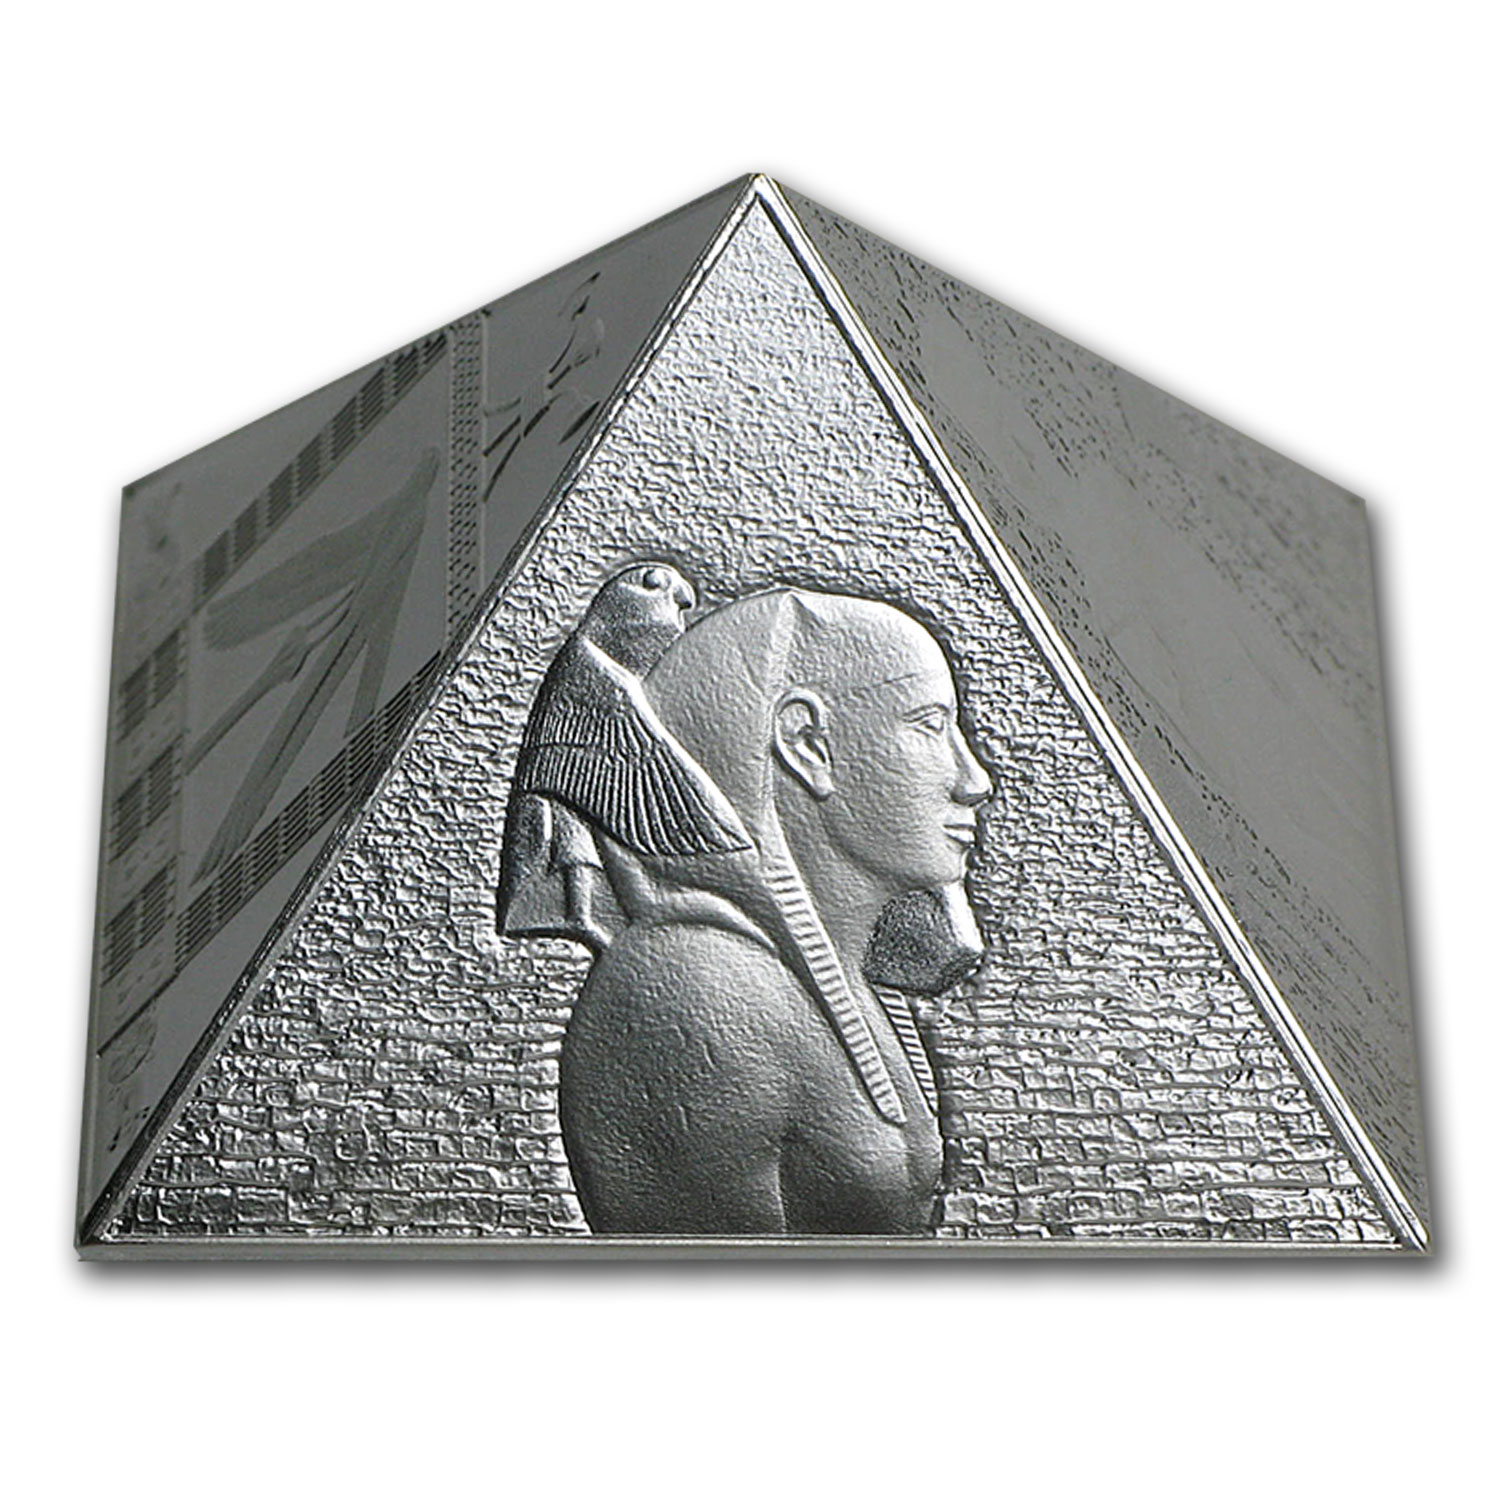 2014 Niue Silver The Great Pyramids Proof (First Pyramid Coin)